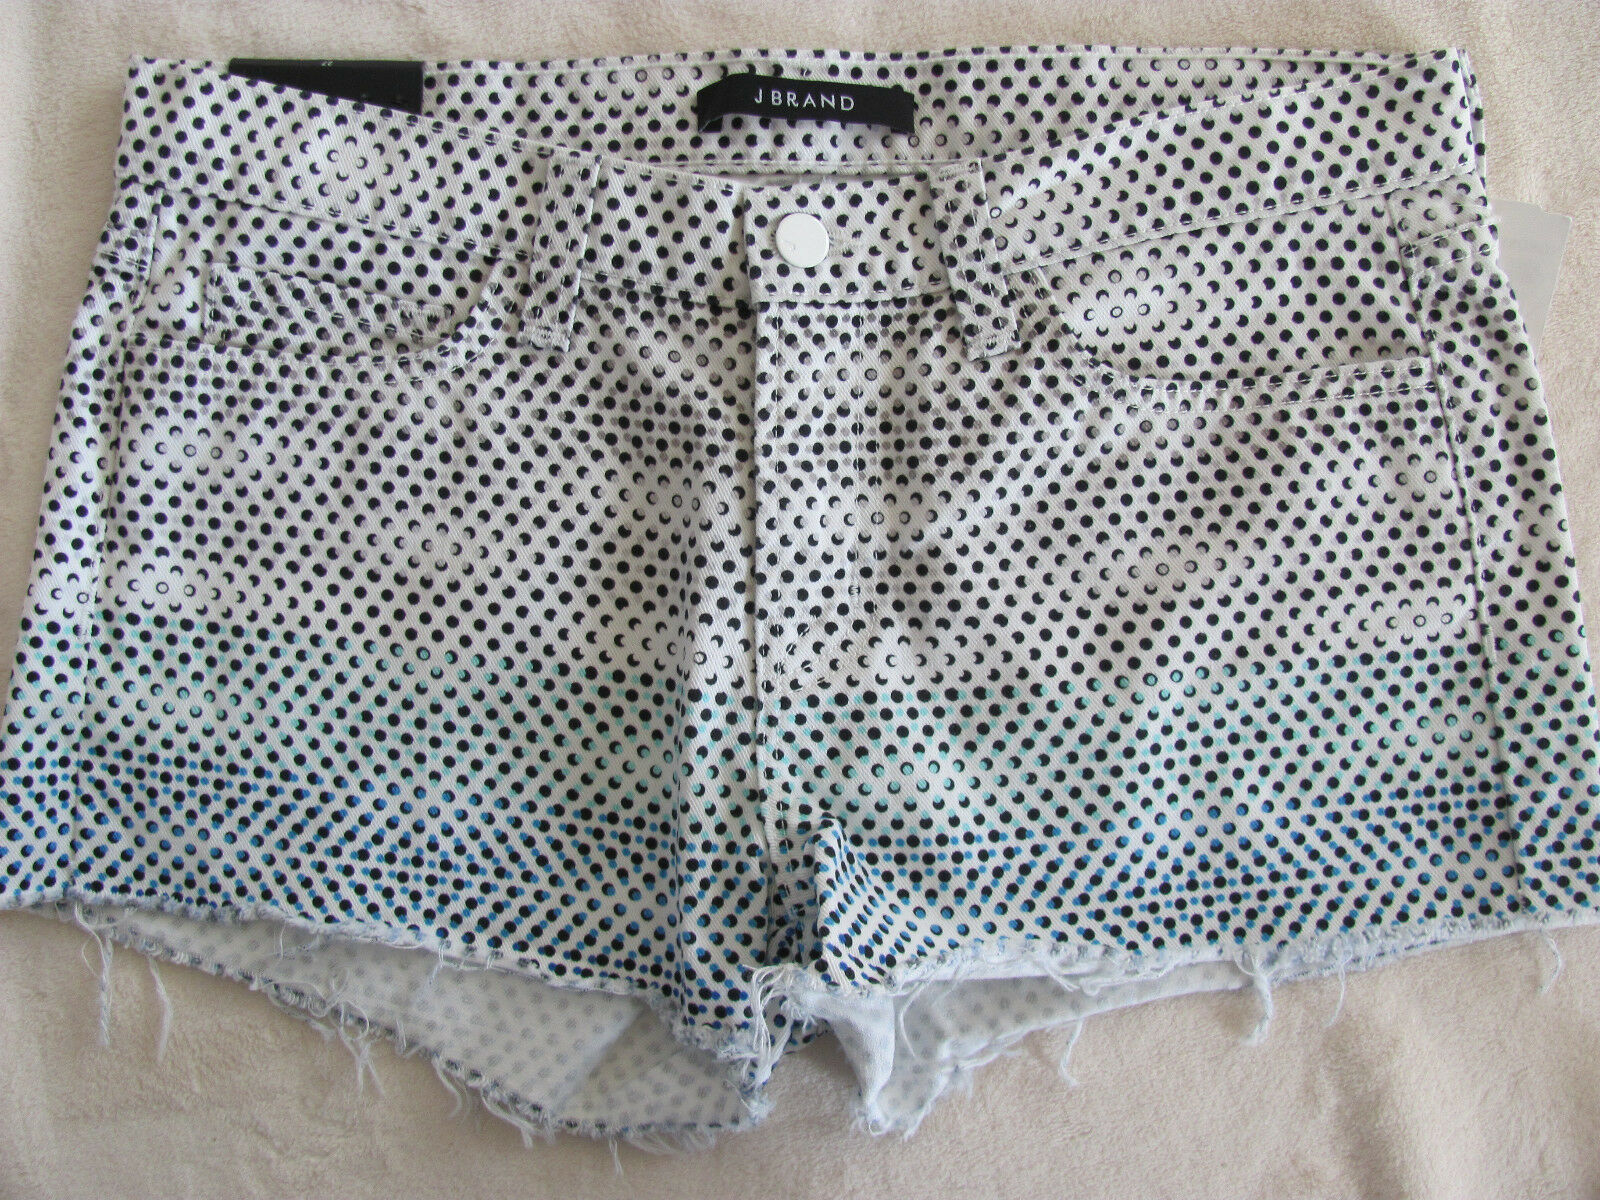 J Brand Cut Off Shorts - Ombre Dot -Low Rise - Size 27 - NWT